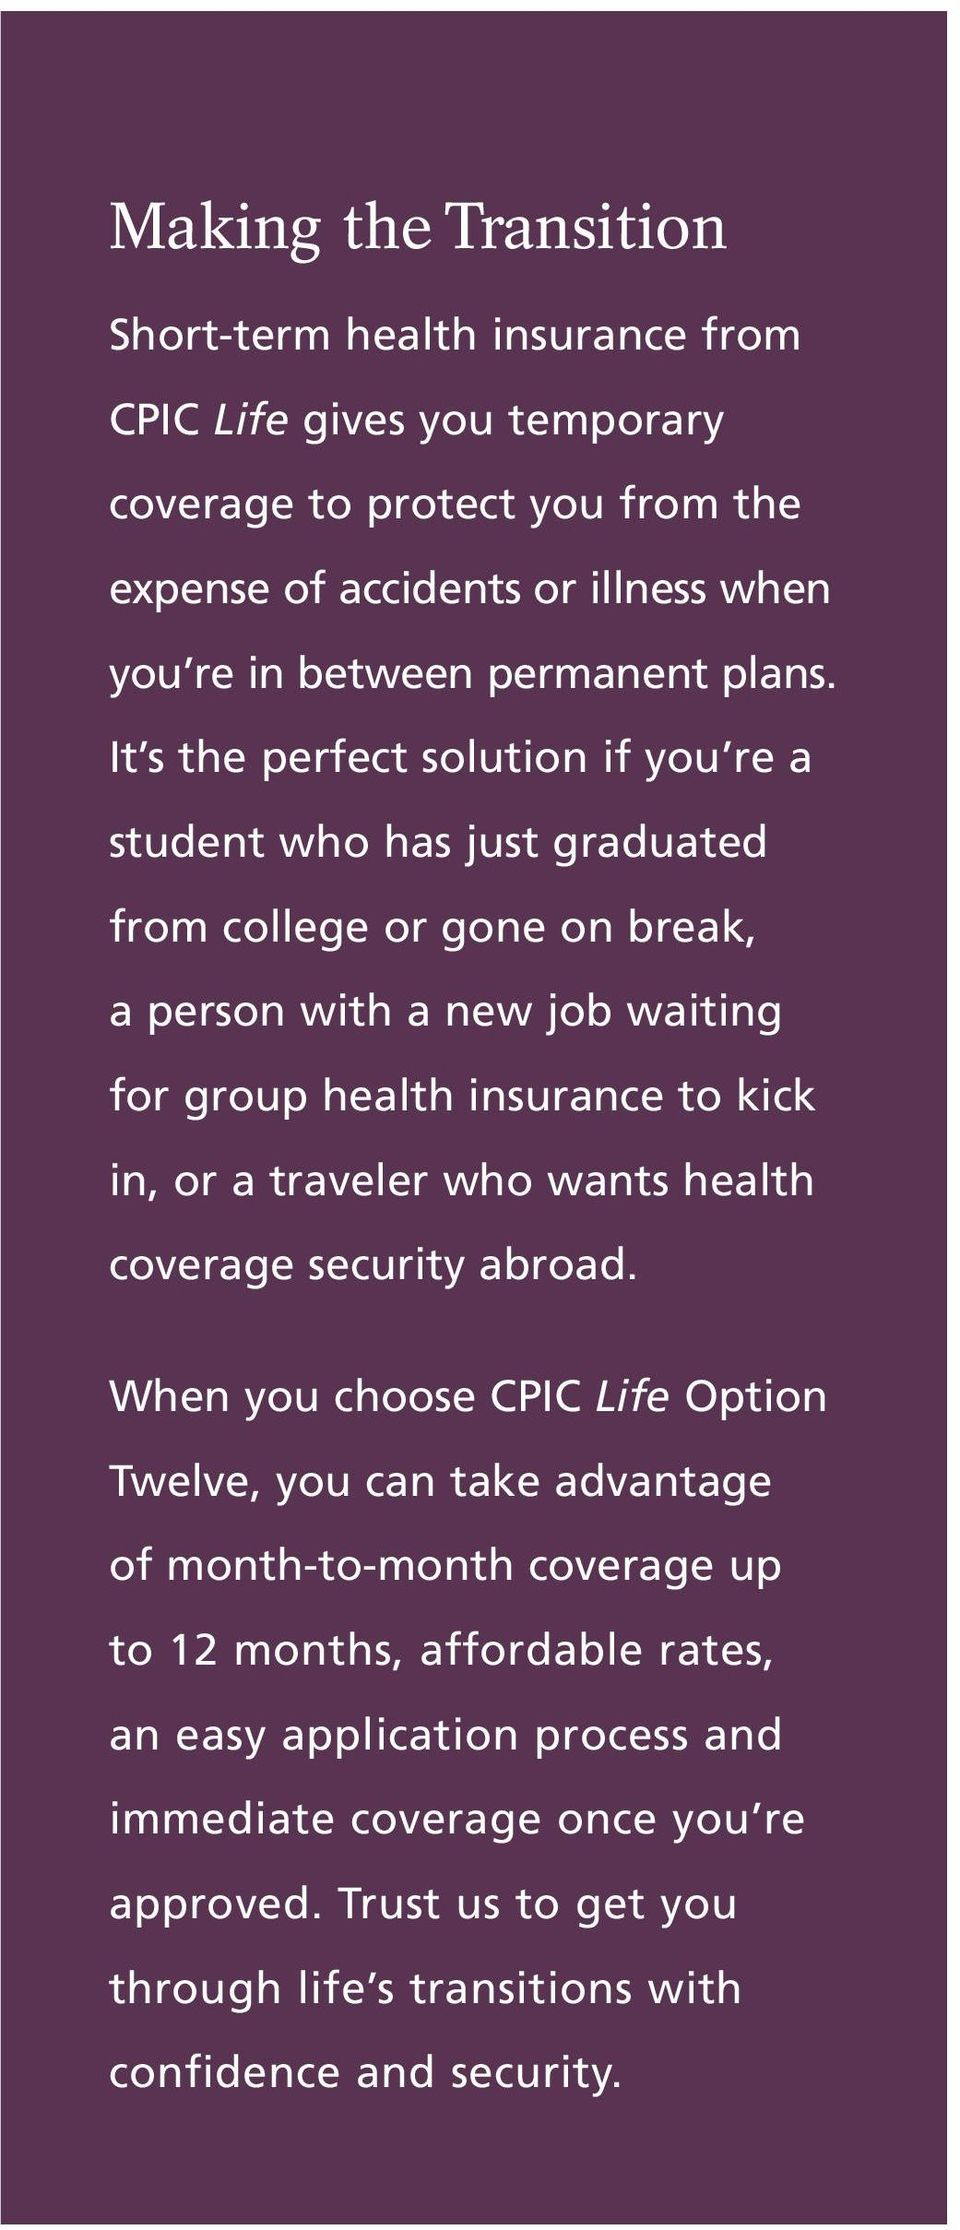 It s the perfect solution if you re a student who has just graduated from college or gone on break, a person with a new job waiting for group health insurance to kick in, or